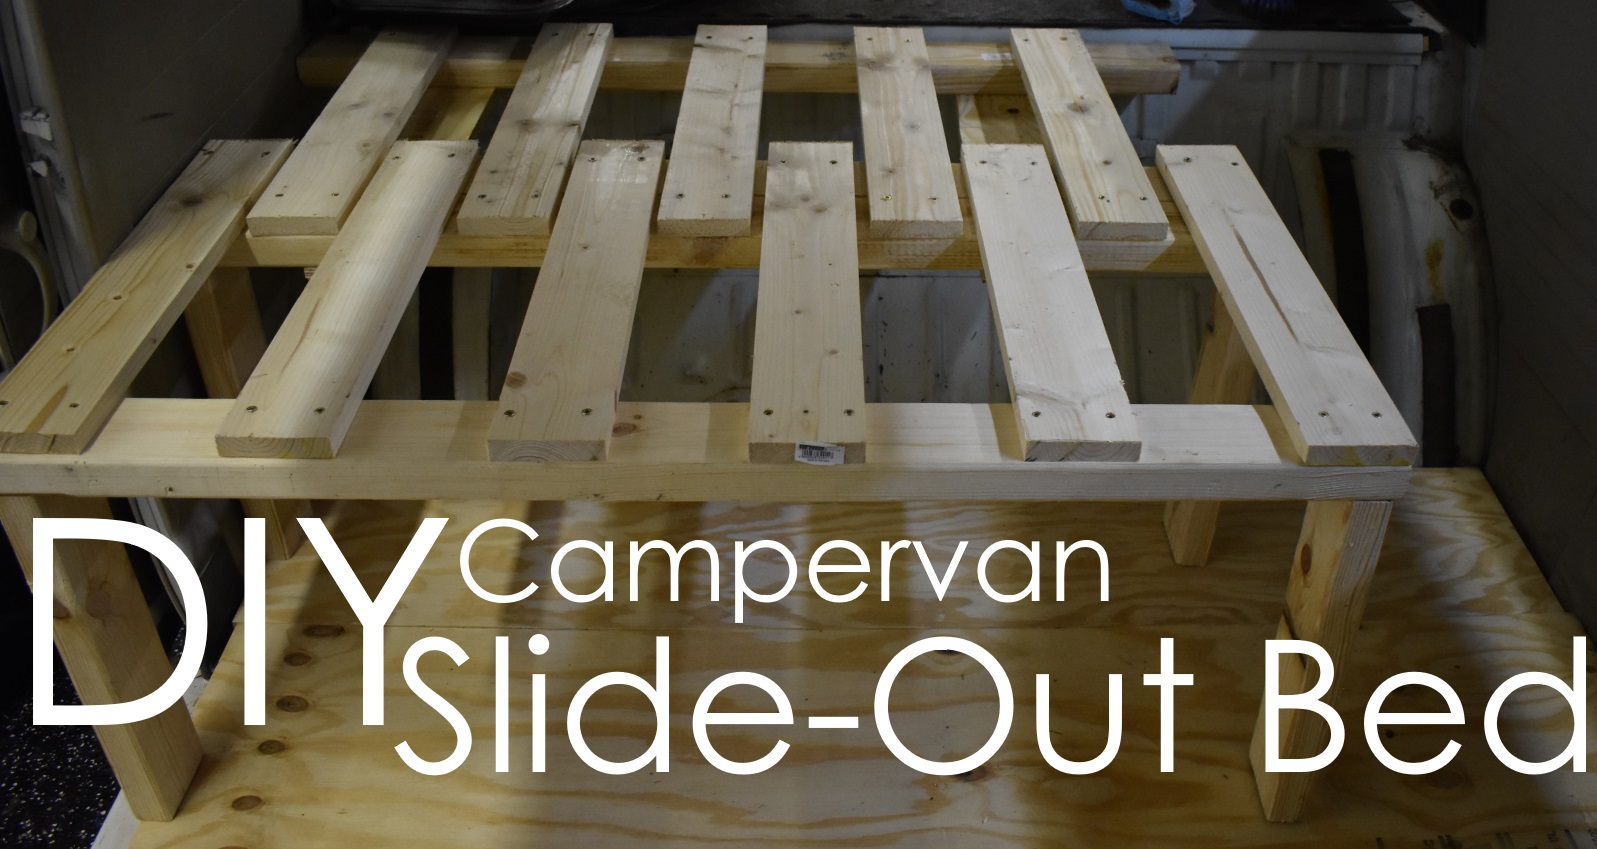 Diy Campervan Slide-out Bed